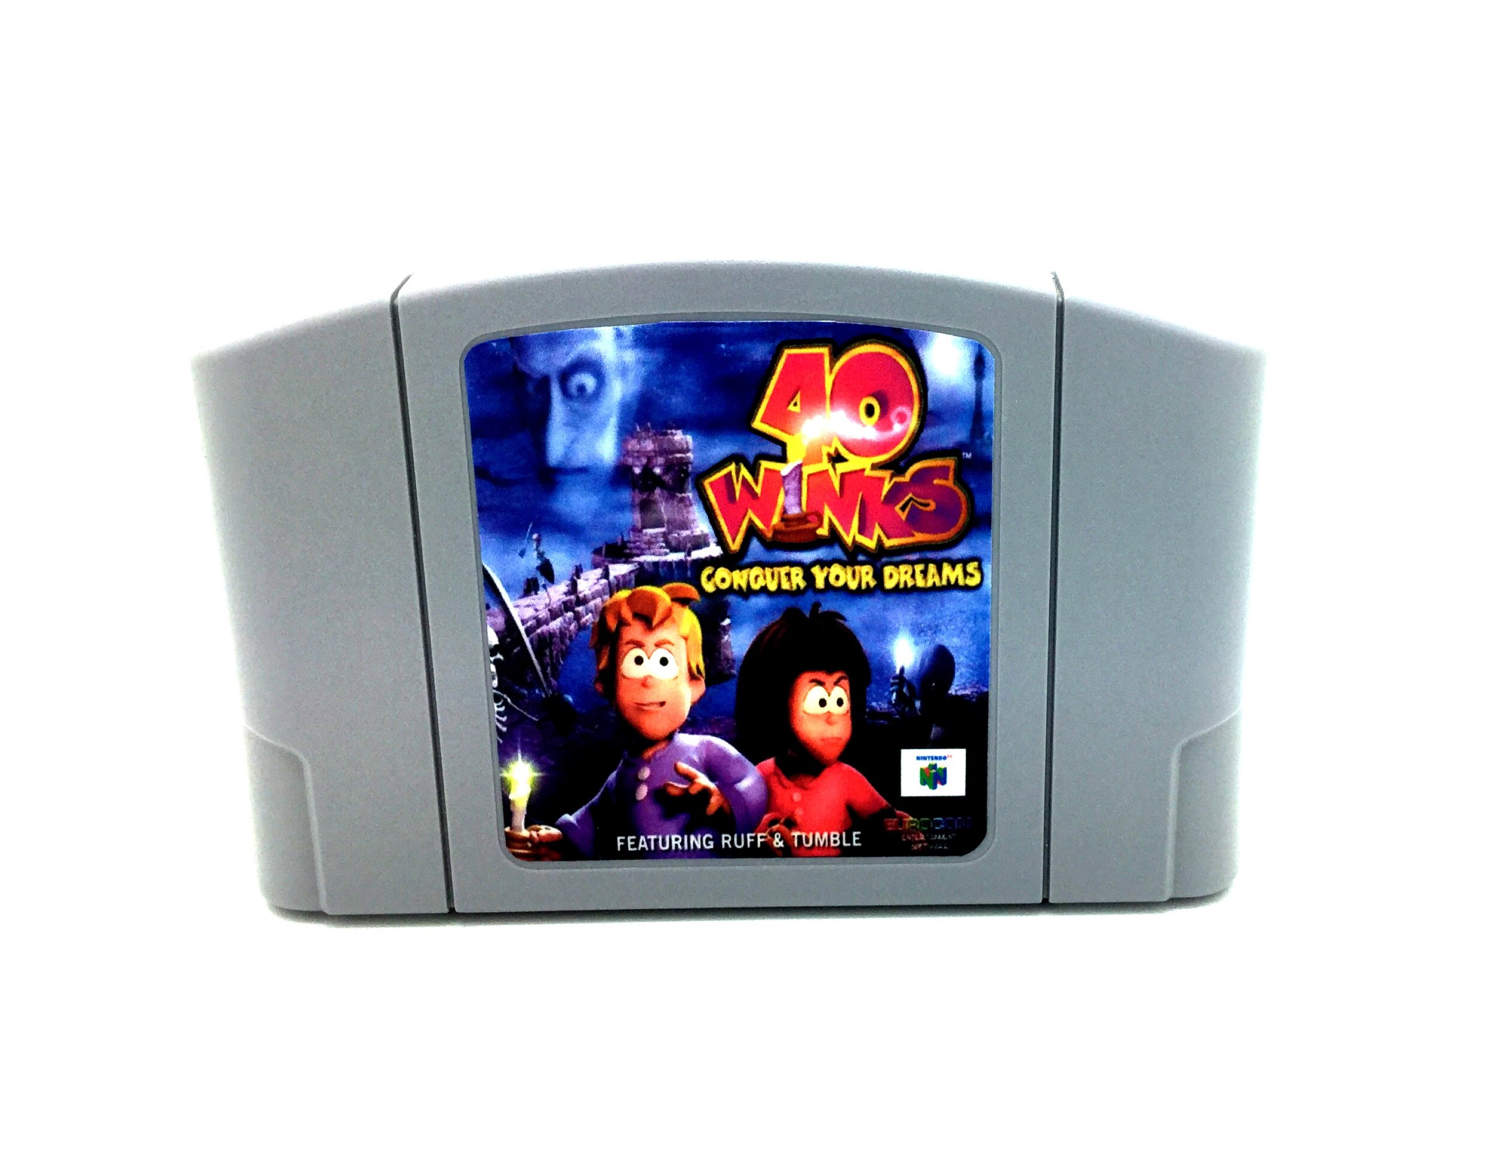 The 40 Winks Nintendo 64 cartridge.